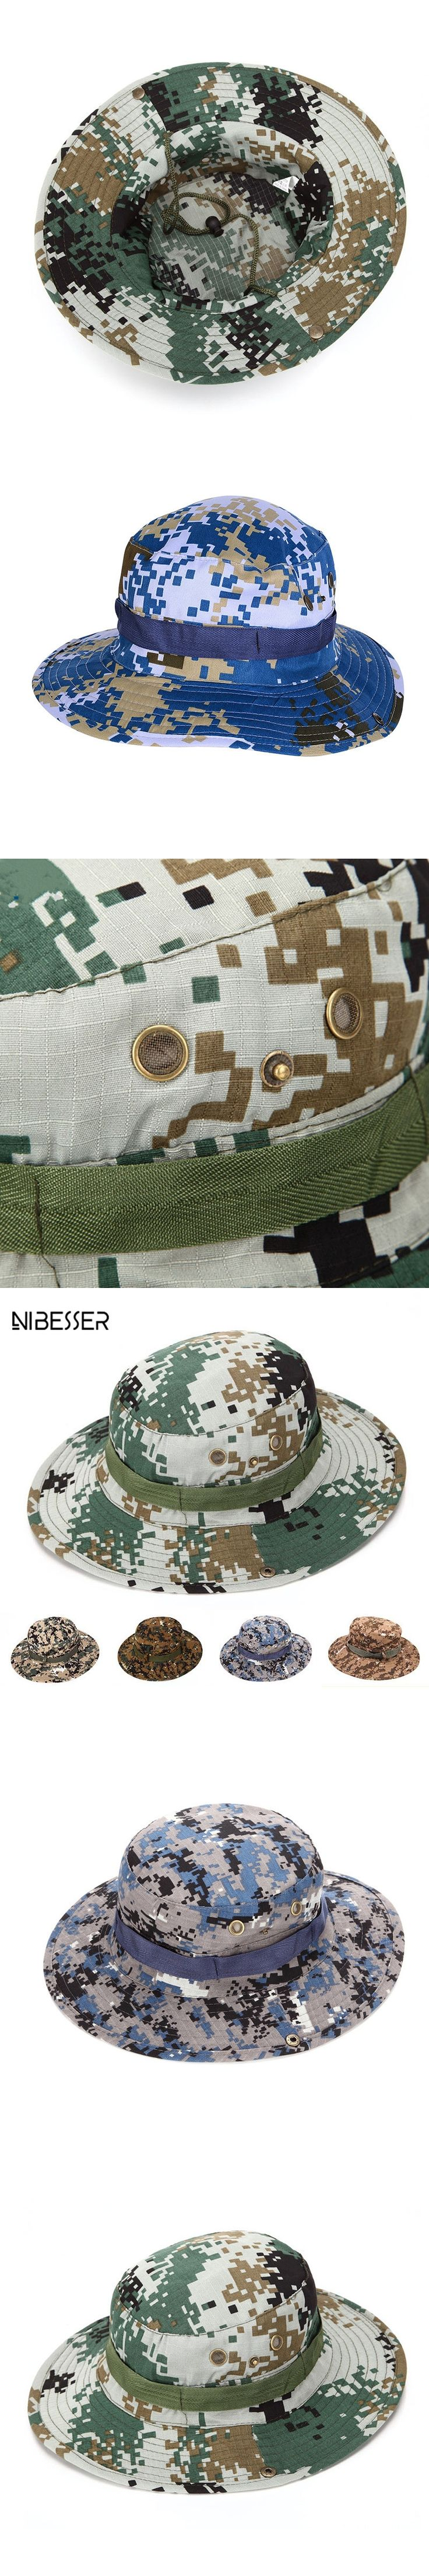 NIBESSER Bucket Hats For Men Tactical Camouflage Boonie Hats Round Nepal Traveling Military Cap Sunshade Fishing Hat